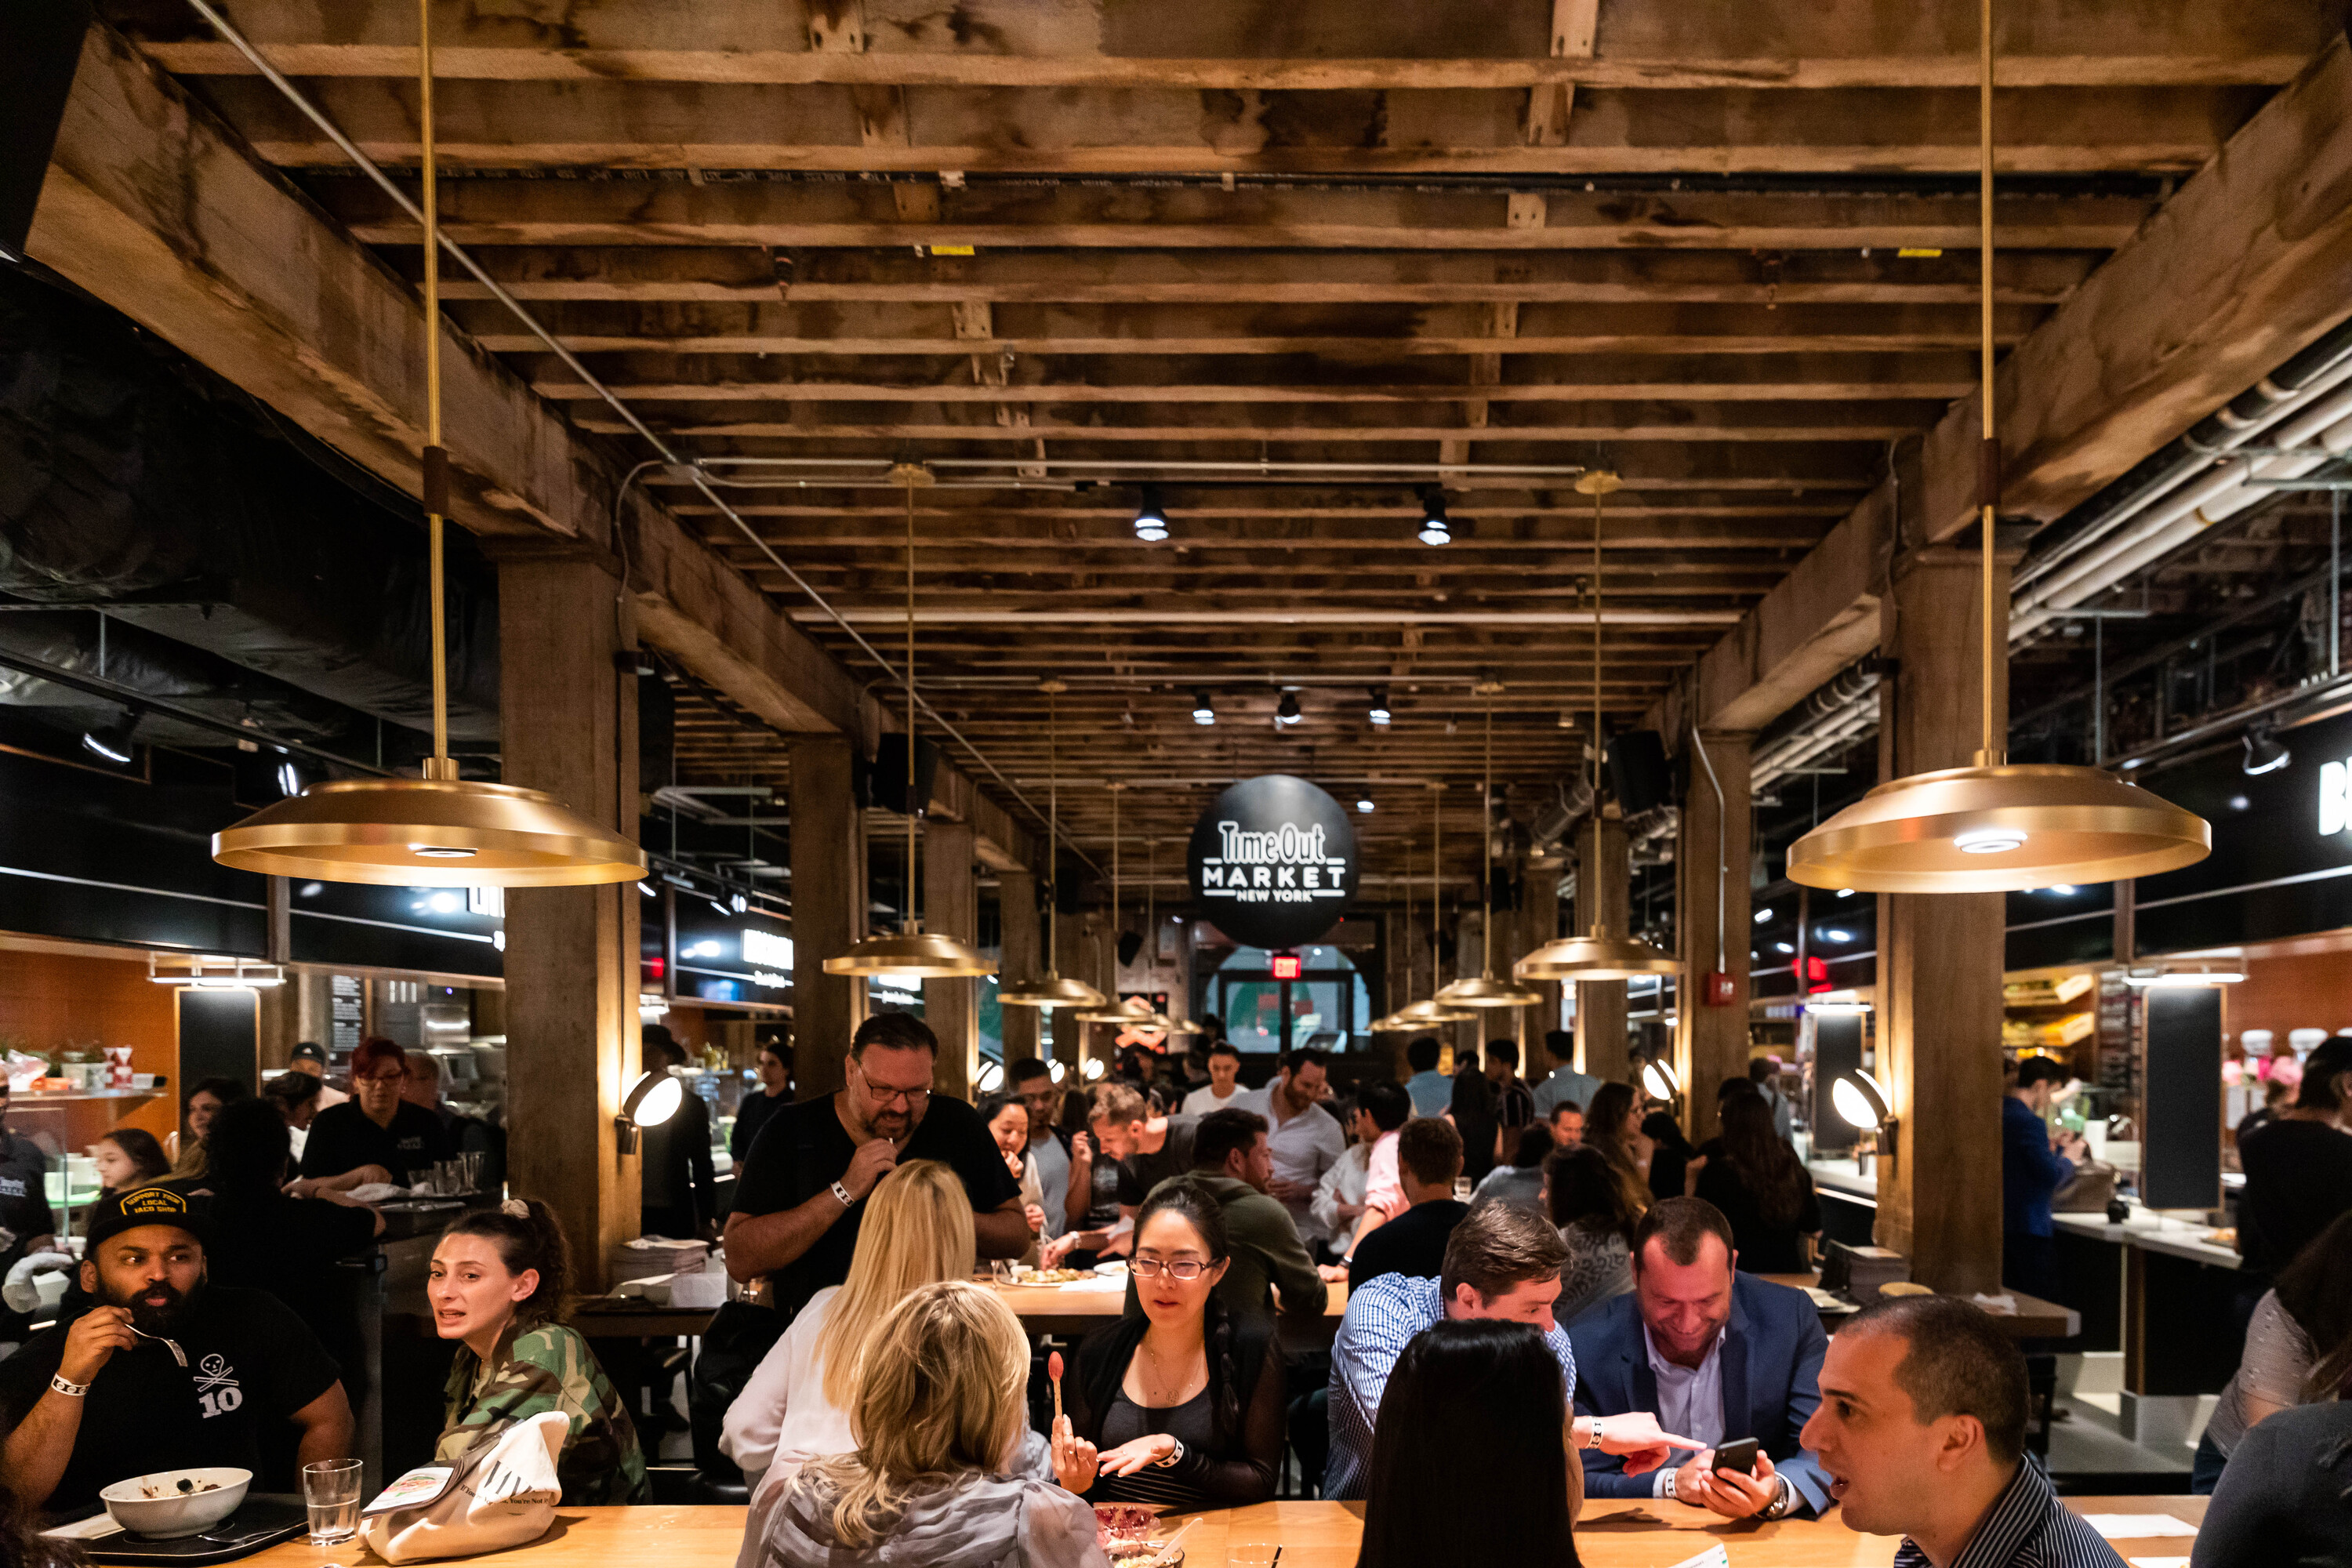 Time Out Market New York Opens In Dumbo Brooklyn